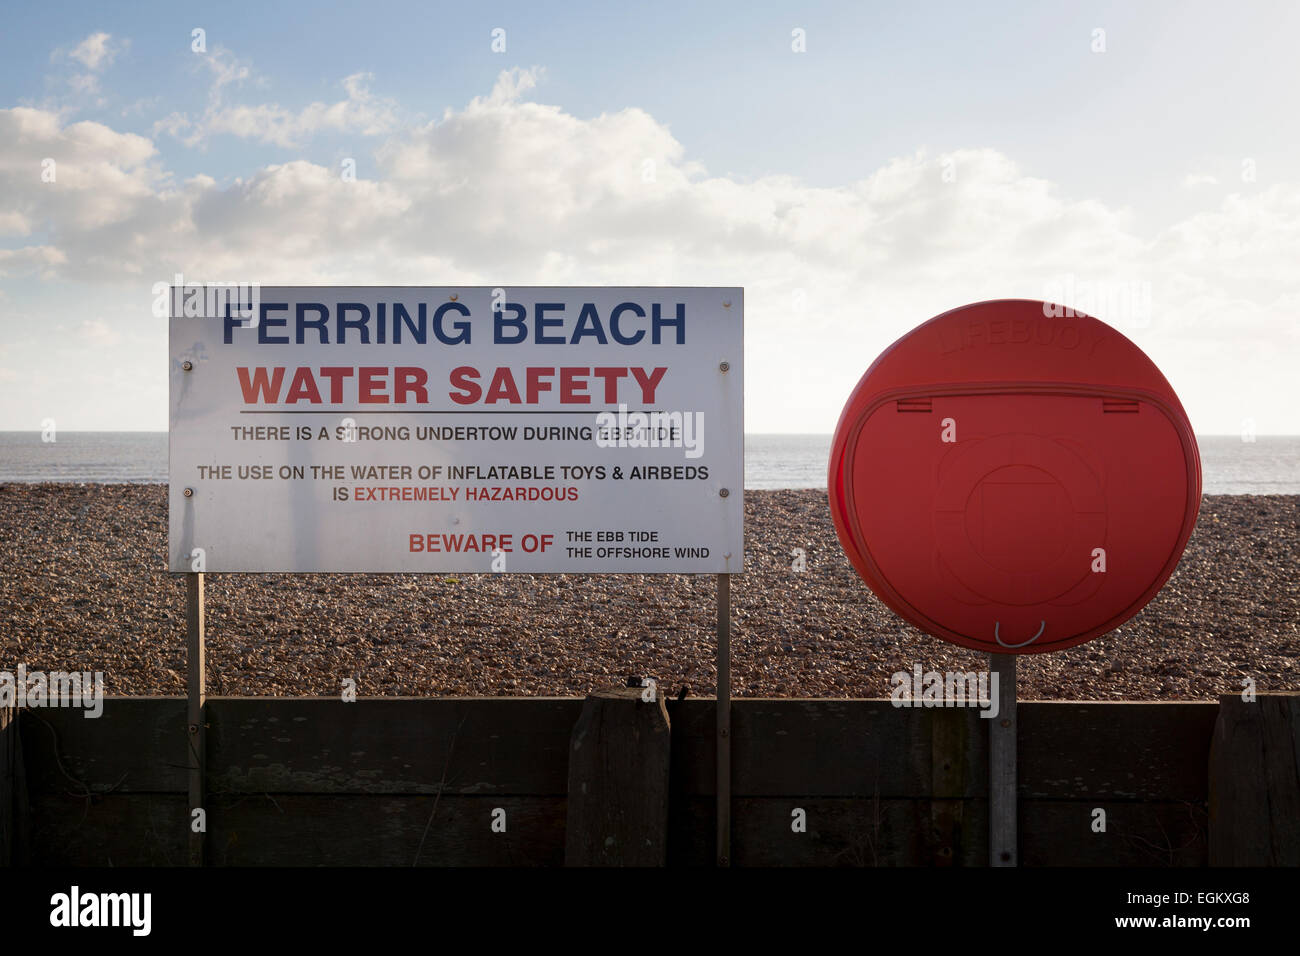 Ferring beach water safety sign and lifebuoy ring housing Stock Photo